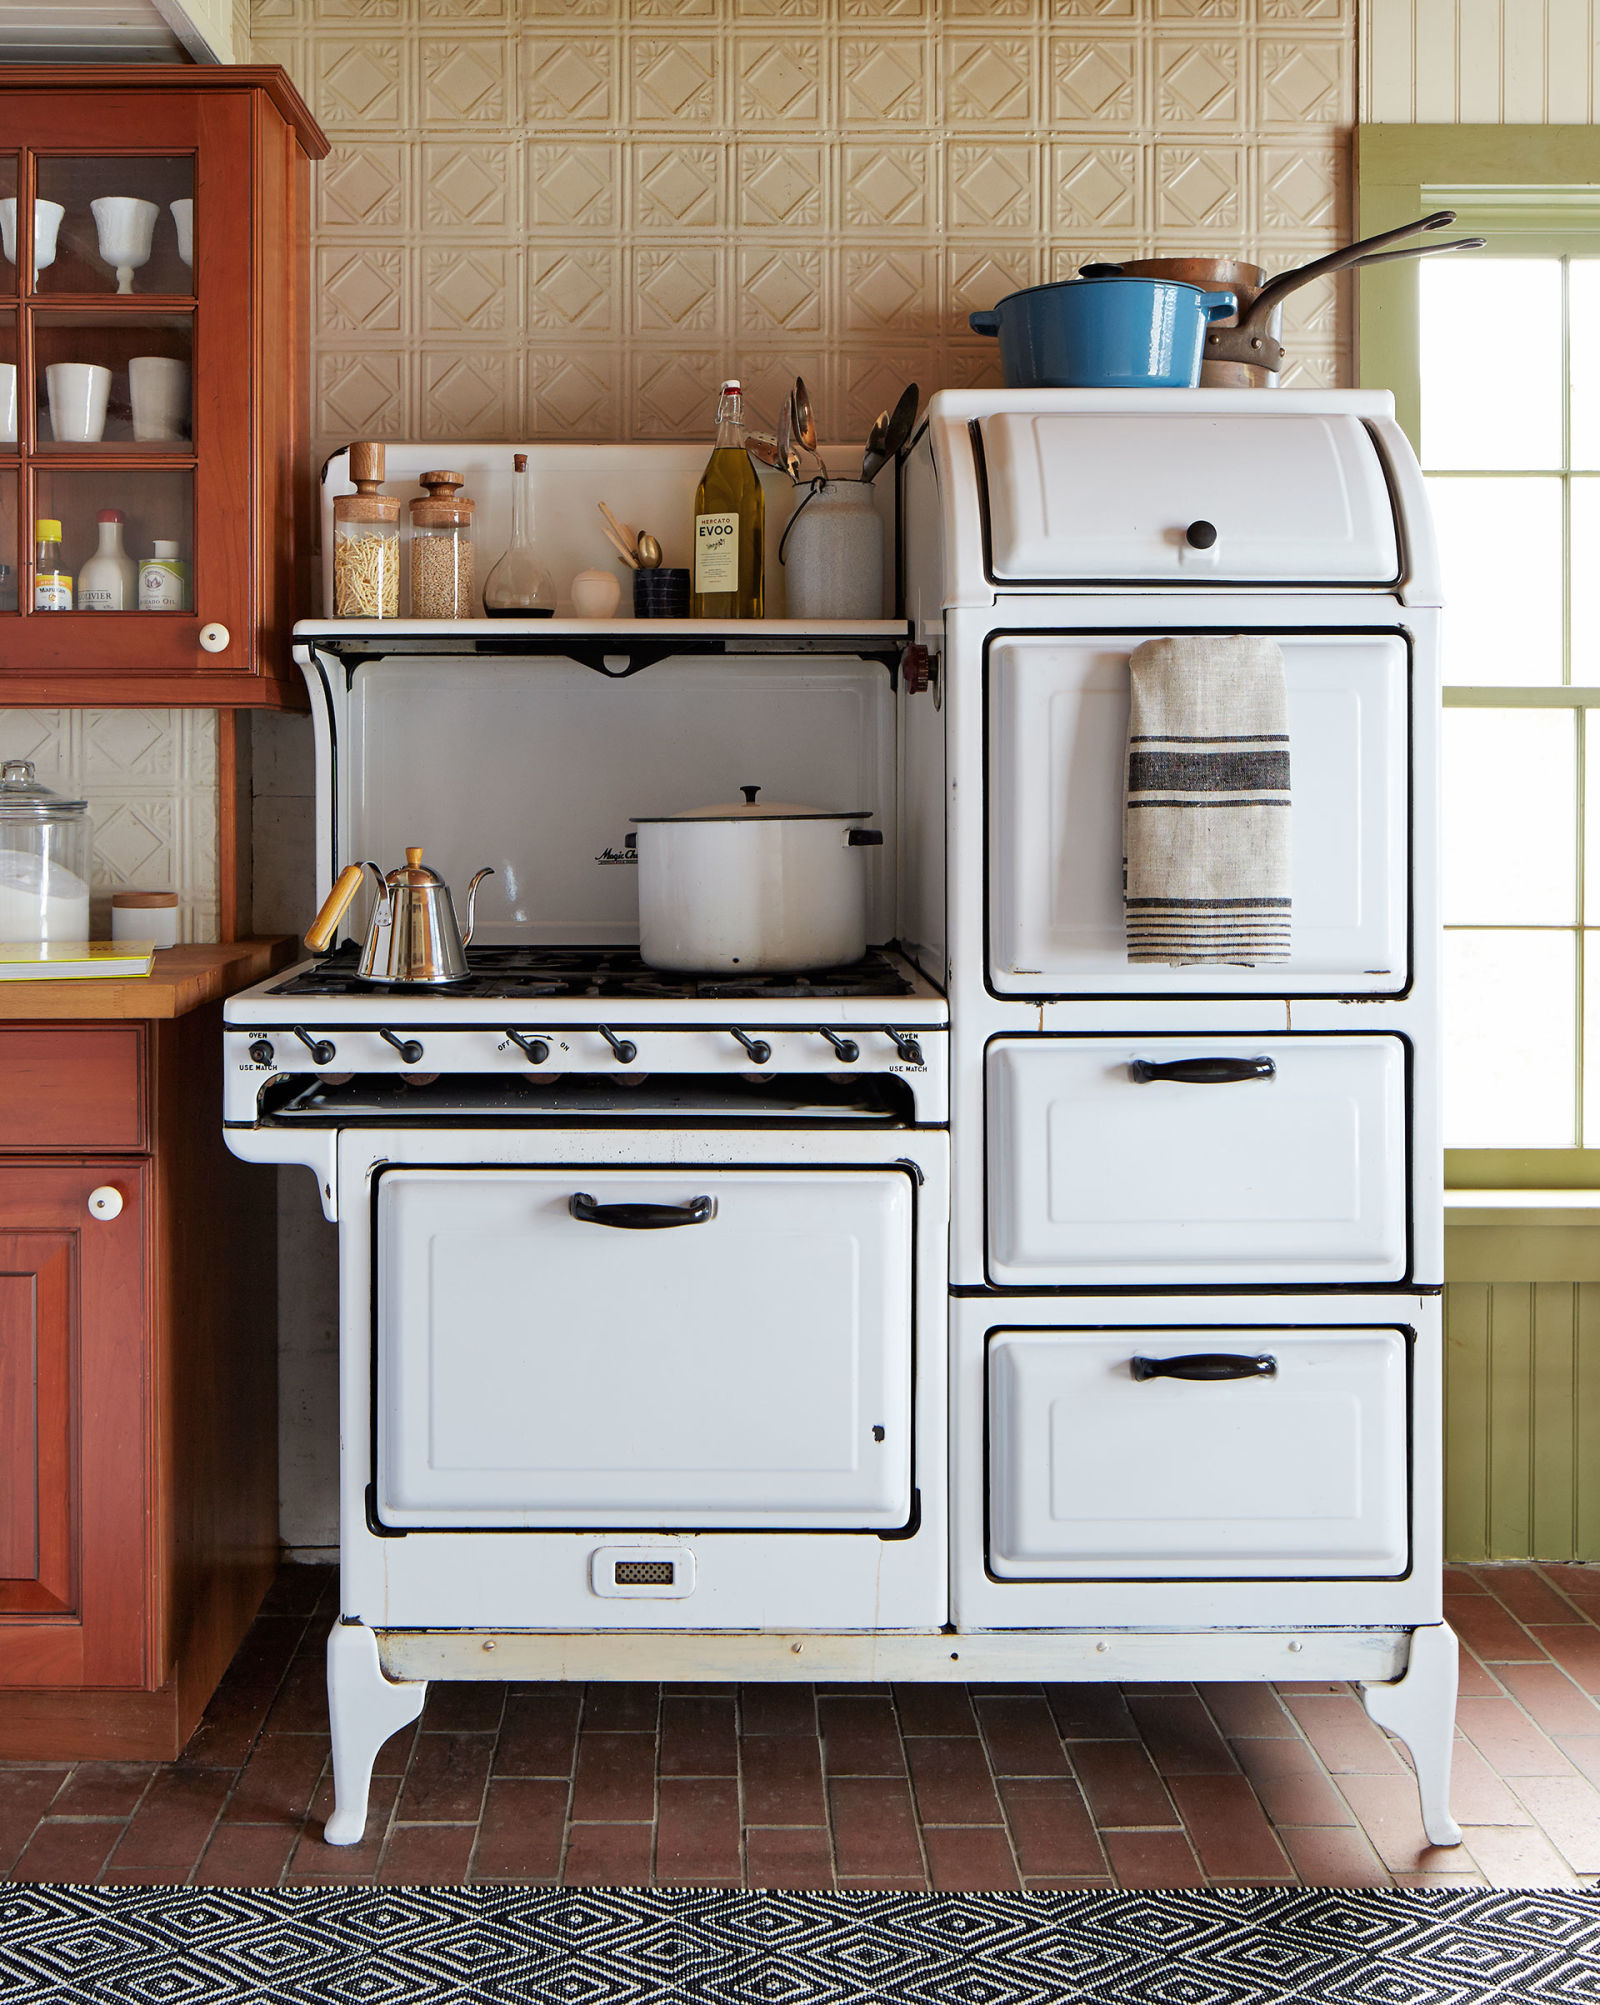 Uncategorized Vintage Style Kitchen Appliance vintage appliances stoves